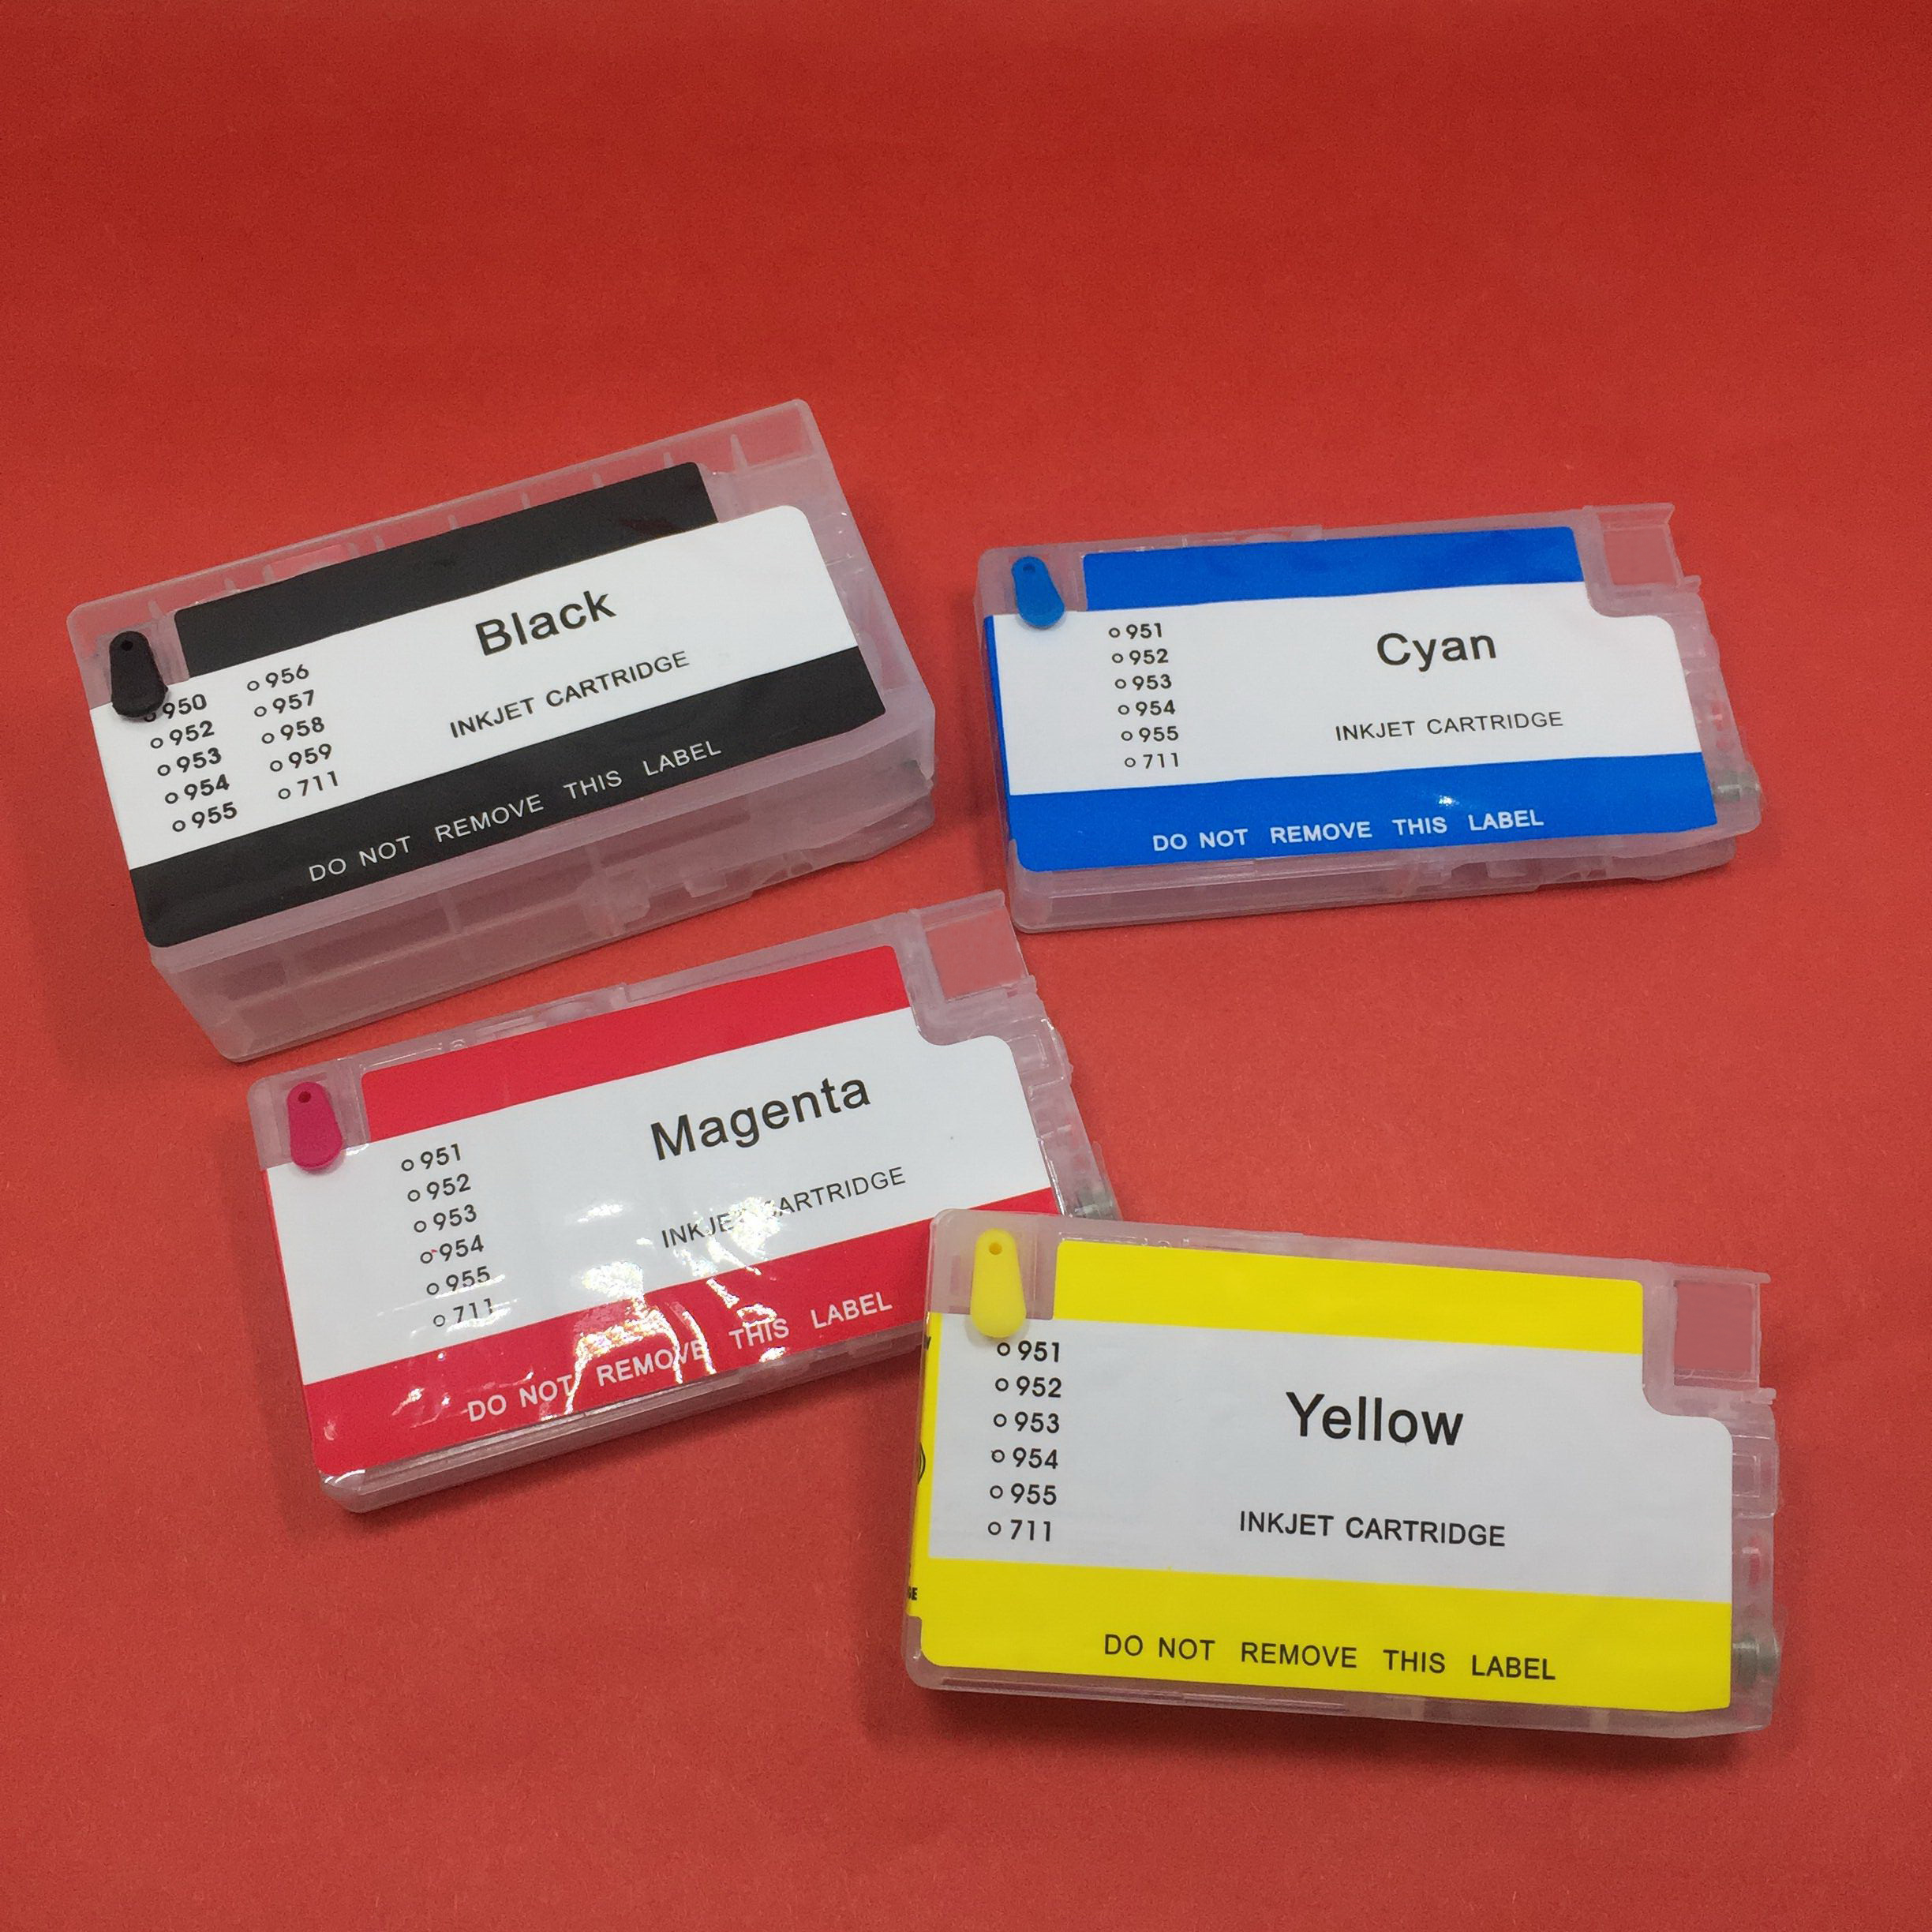 YOTAT (No chip) <font><b>Refillable</b></font> Ink Cartridge for HP952 <font><b>HP</b></font> 952 HP953 <font><b>HP</b></font> <font><b>953</b></font> HP954 <font><b>HP</b></font> 954 955 for Officejet Pro 8730 8740 8735 8715... image